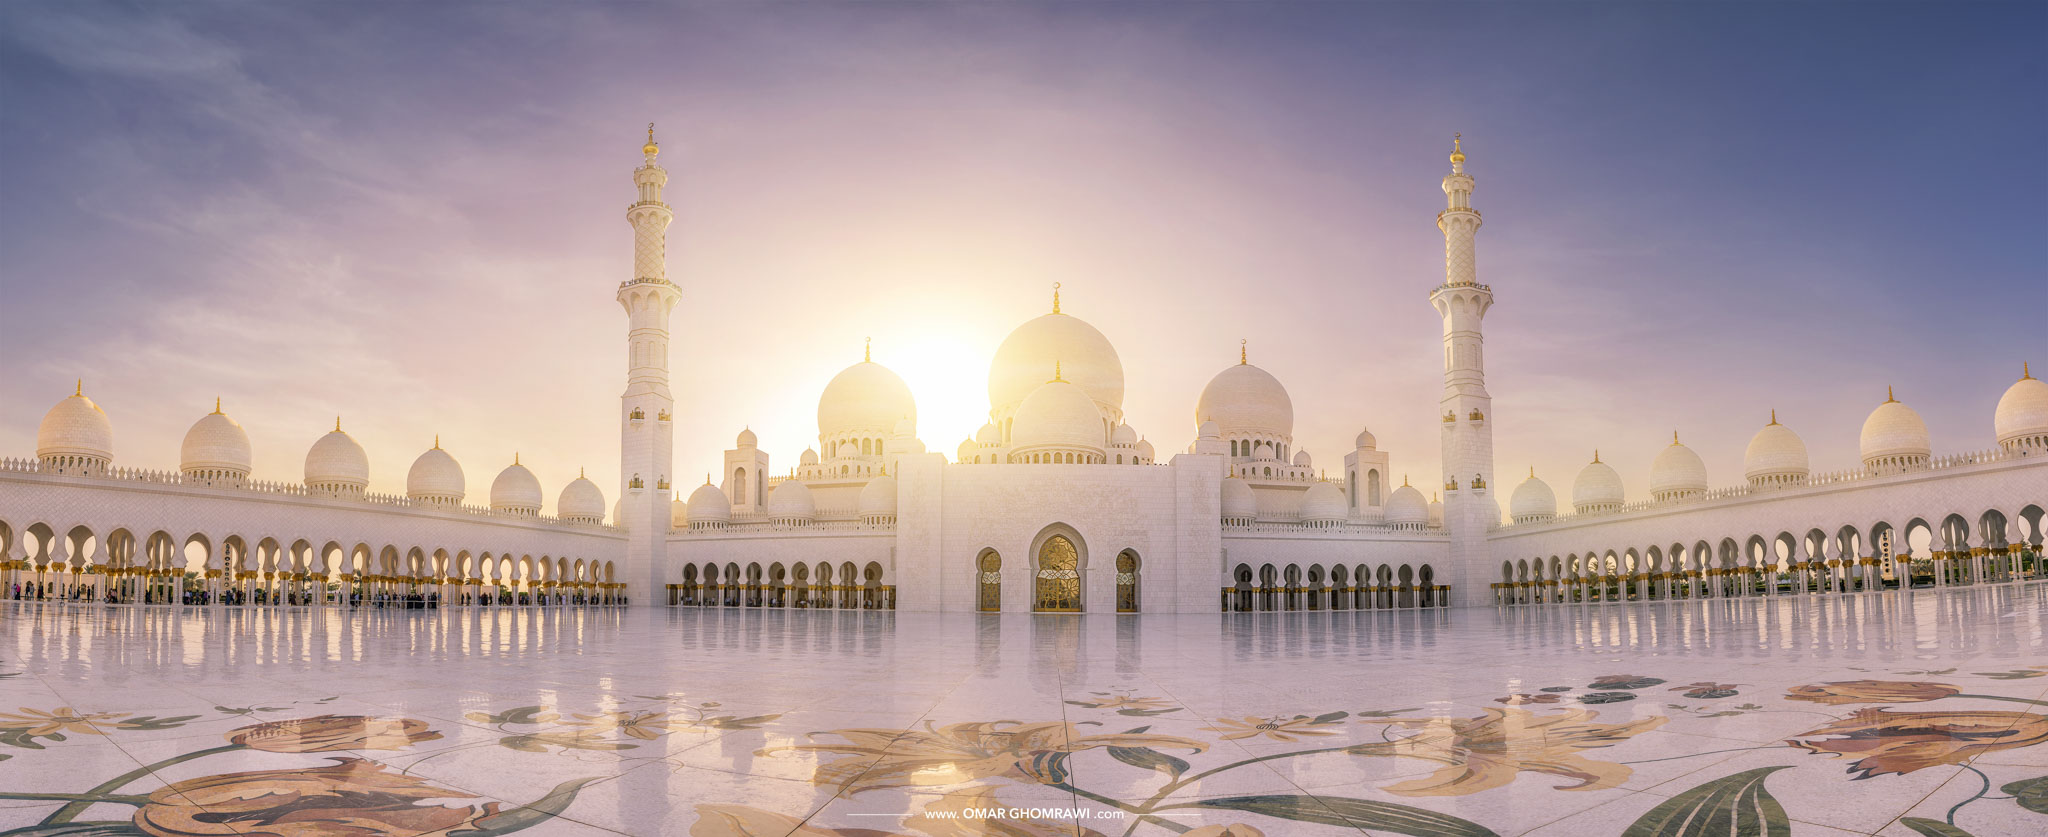 Sheikh Zayed Mosque 9413